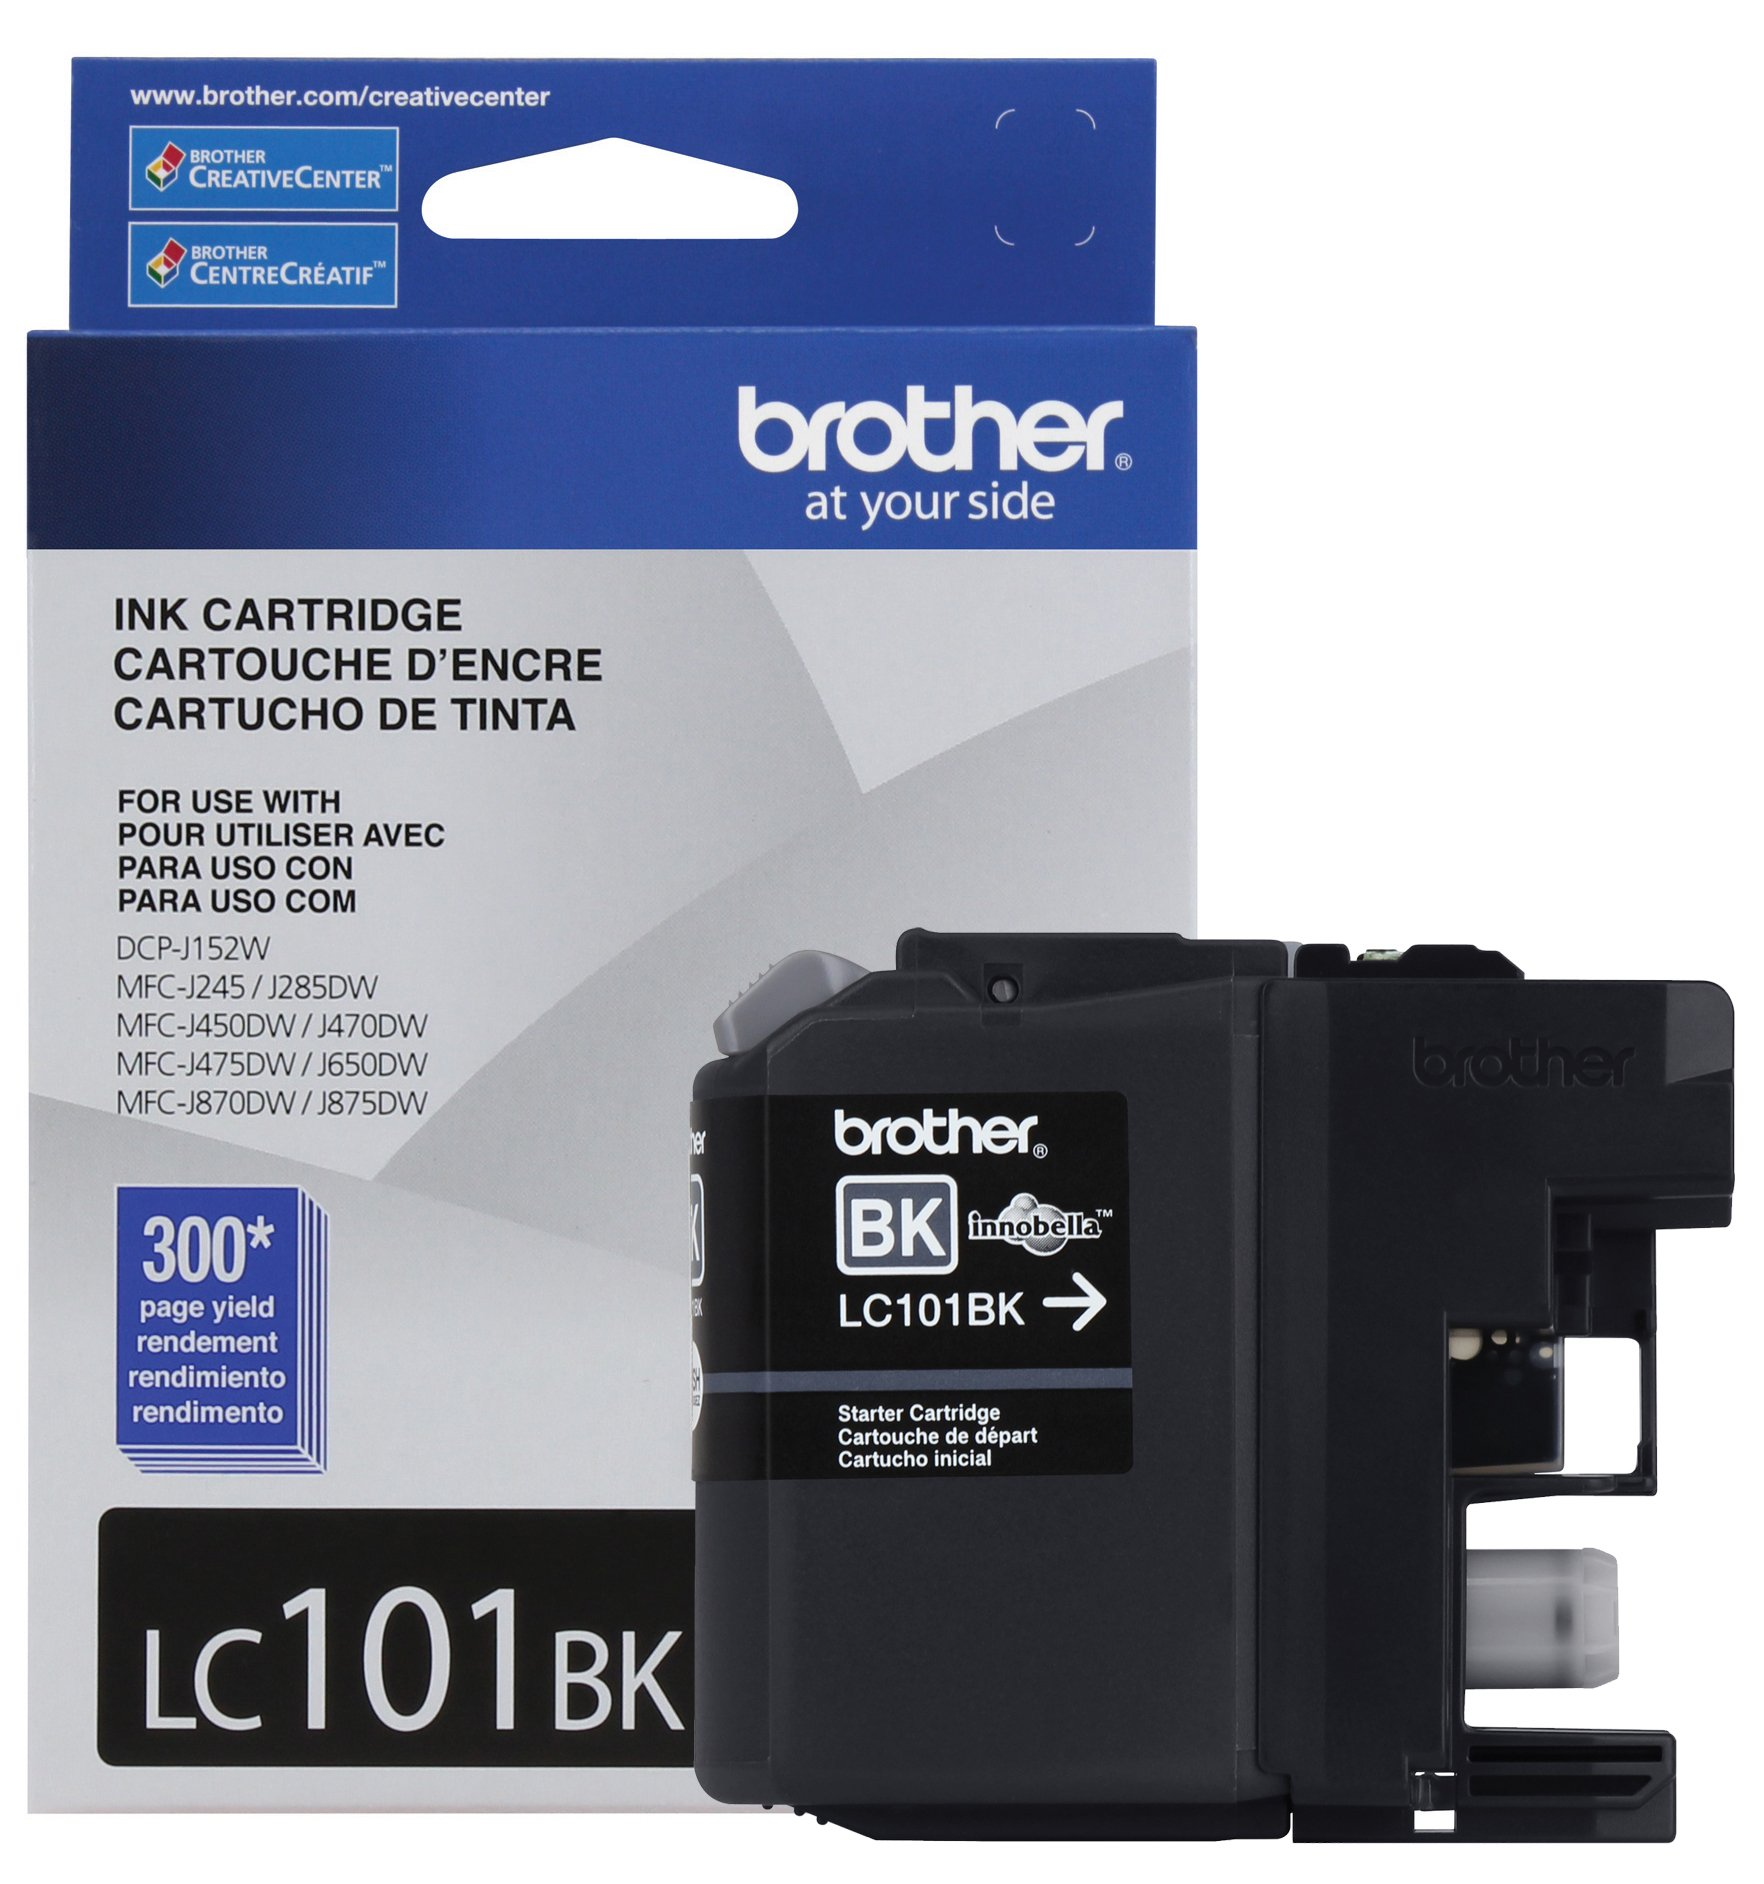 Brother Genuine Standard Yield Black Ink Cartridge, LC101BK, Replacement Black Ink, Page Yield Up To 300 Pages, LC101 by Brother